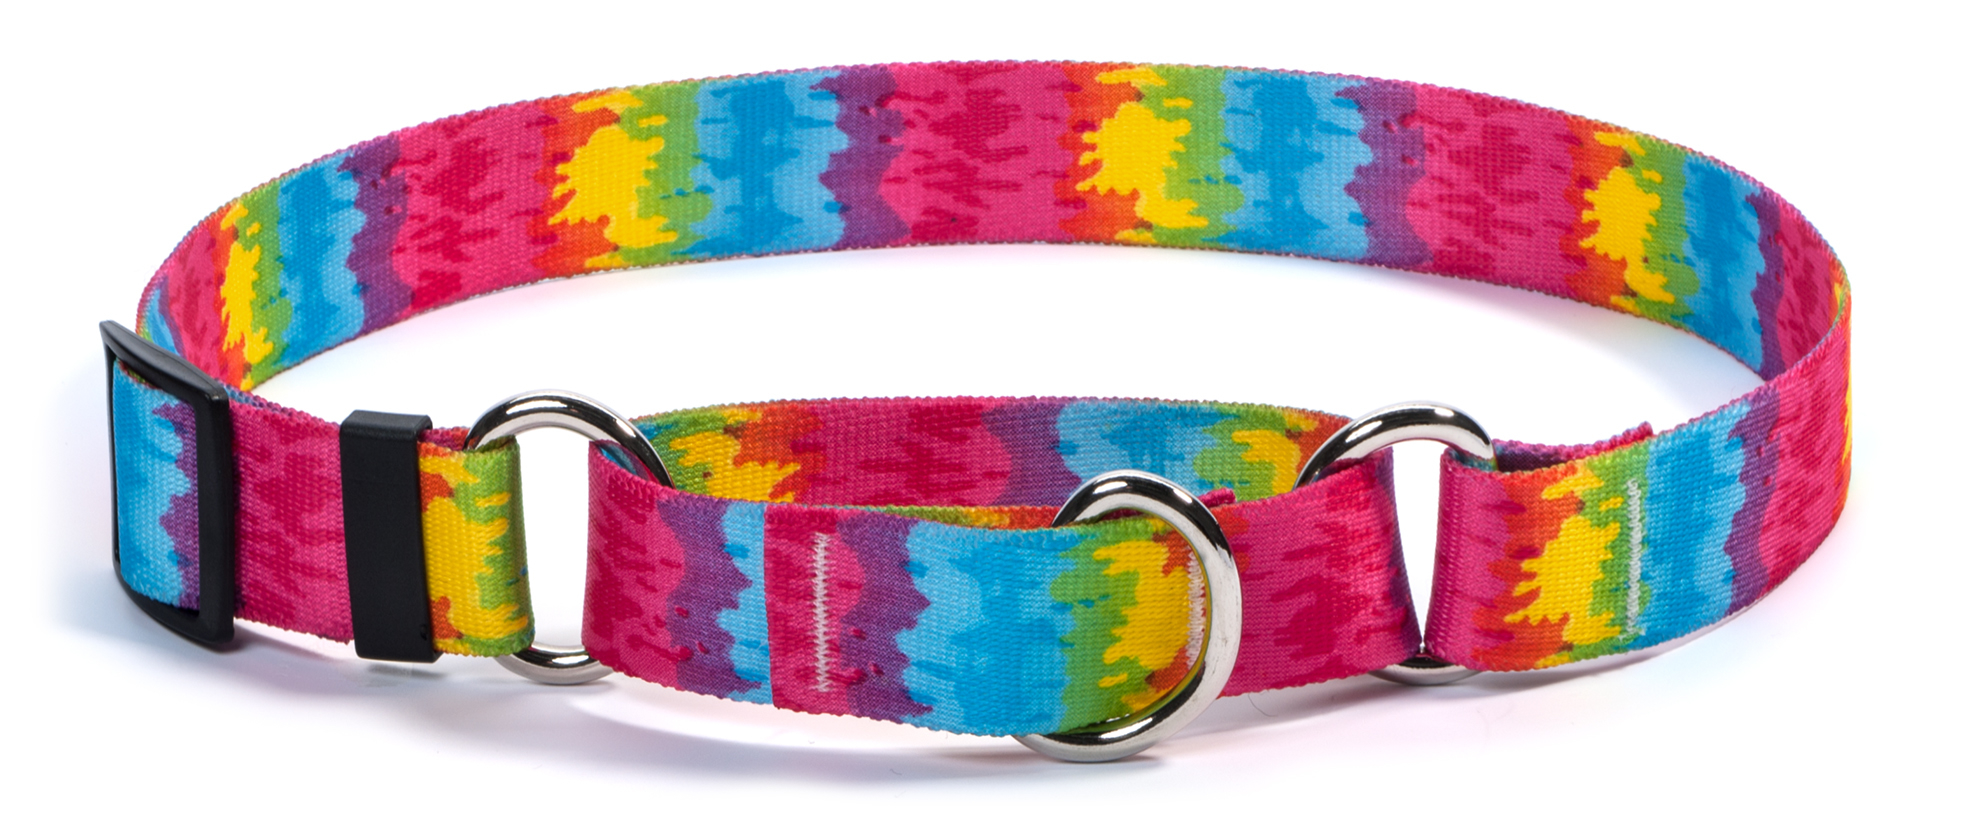 Tie-Dye Martingale Collar